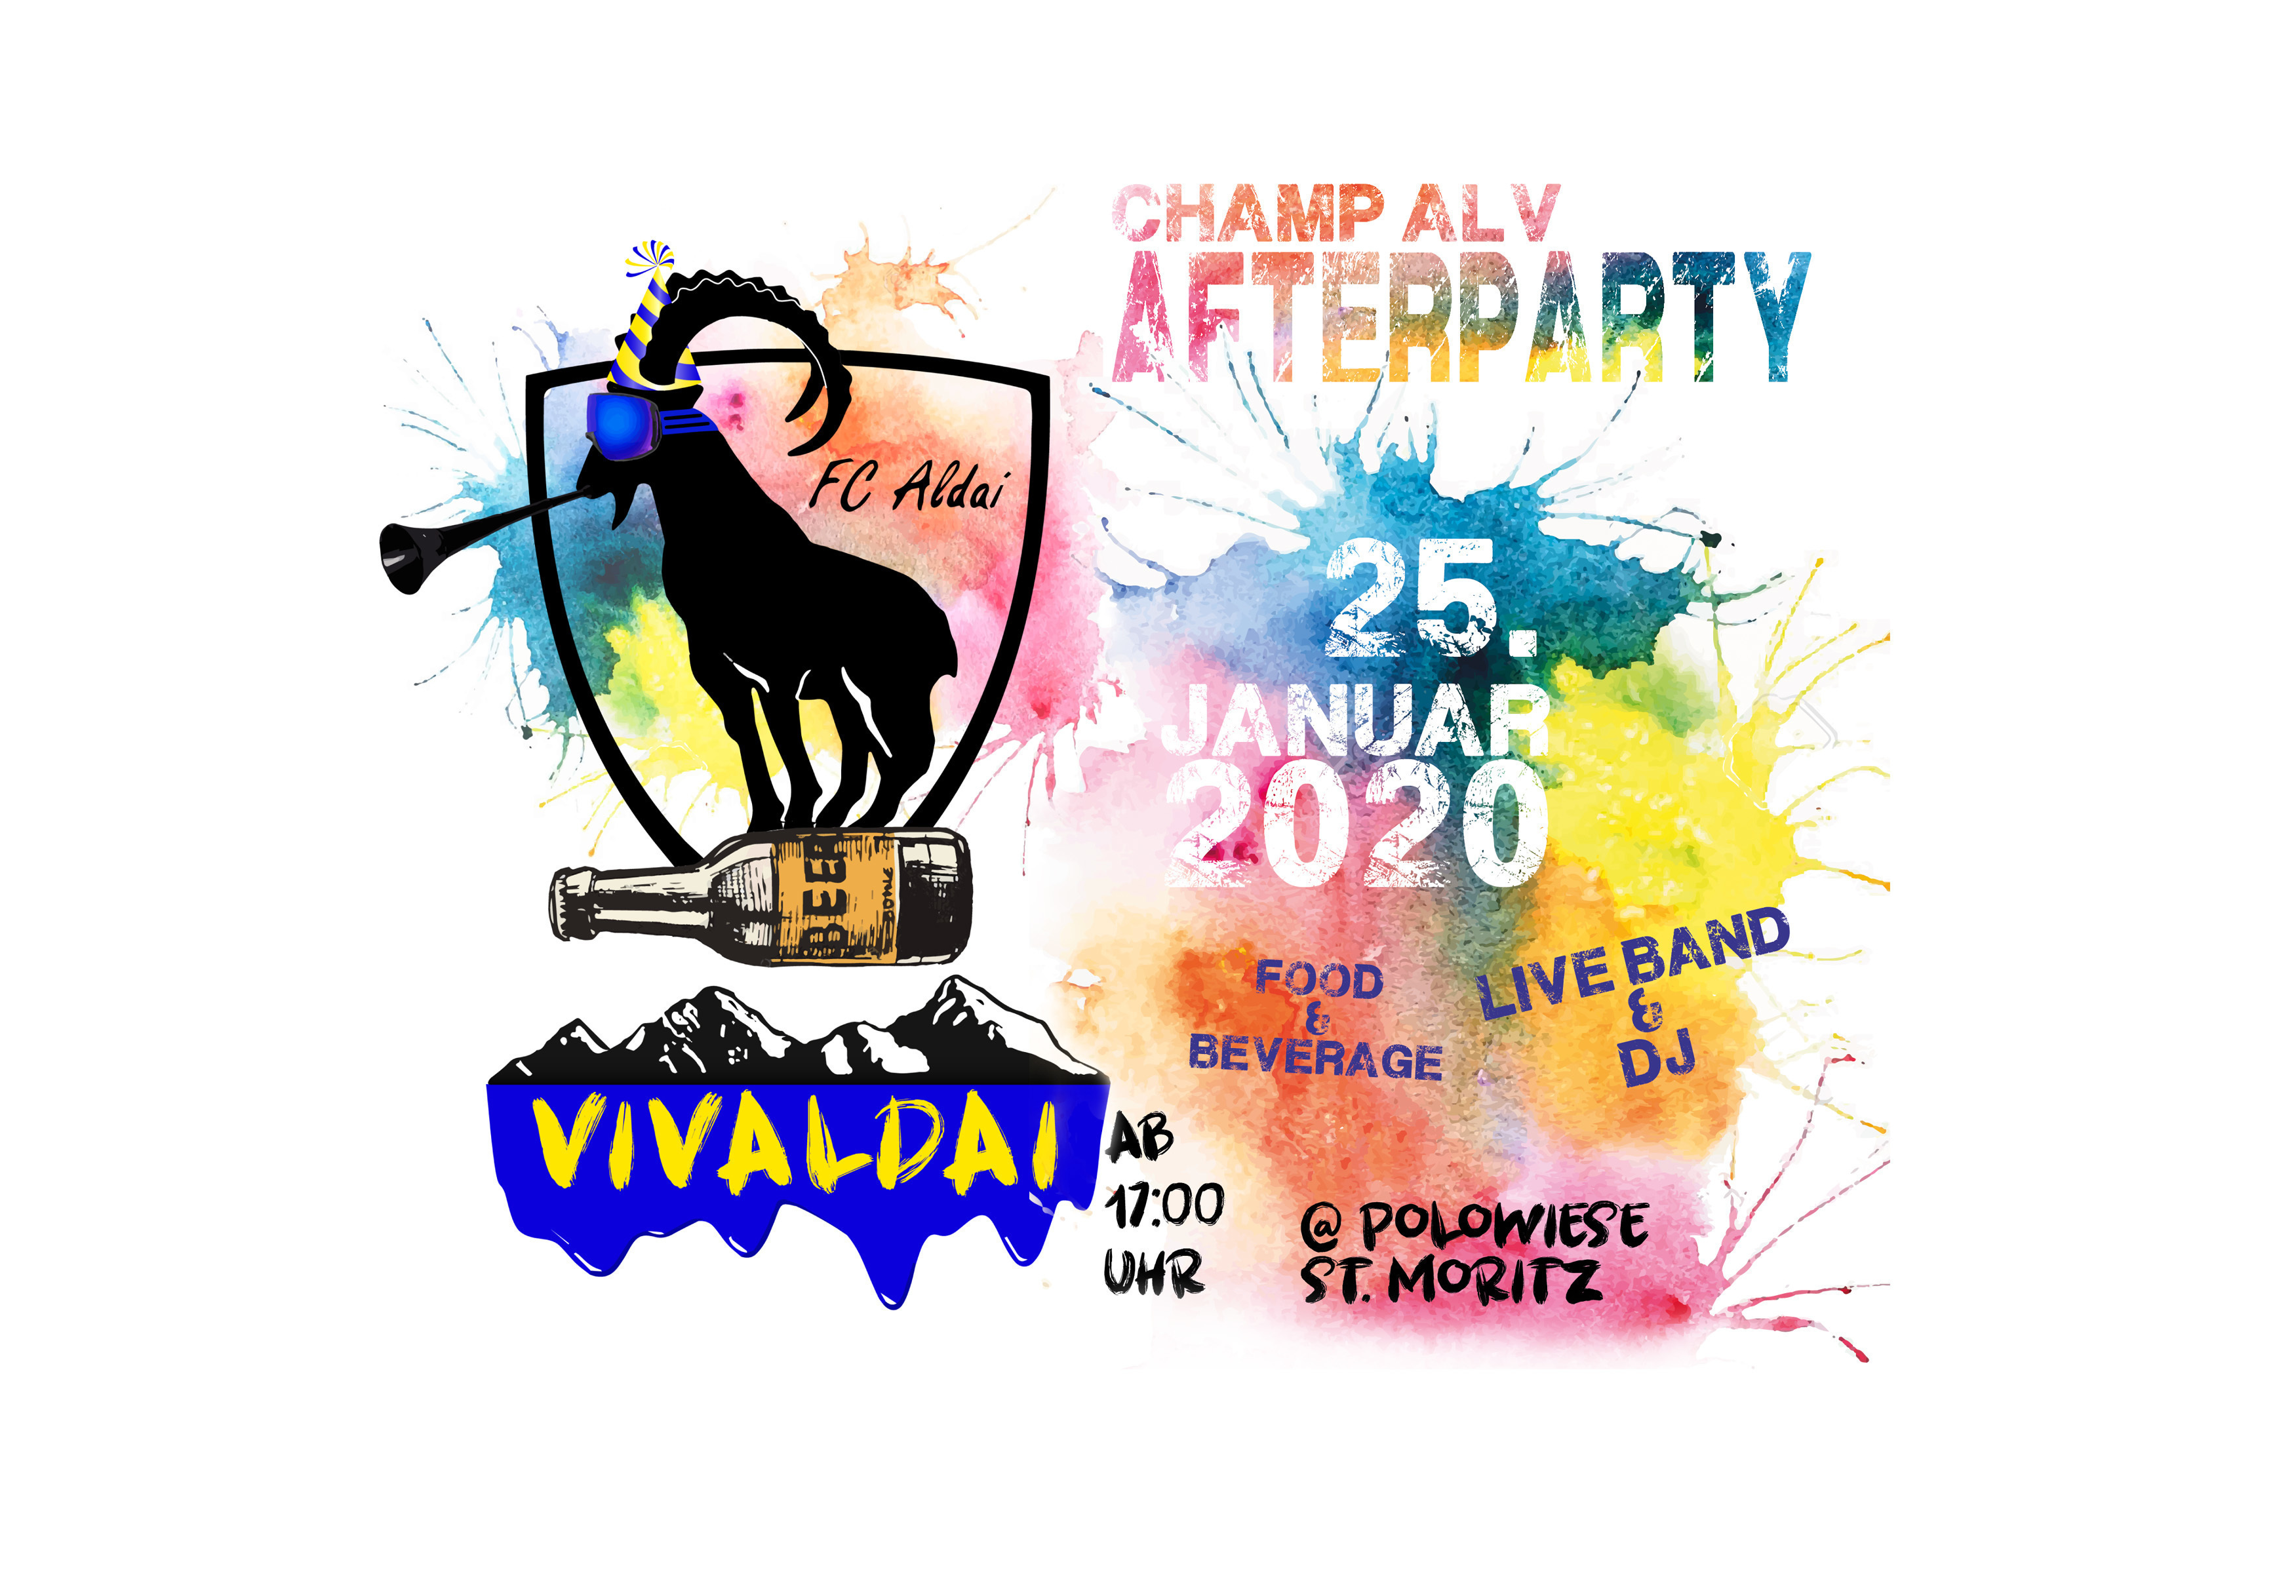 Champ Alv Afterparty - VIVALDAI